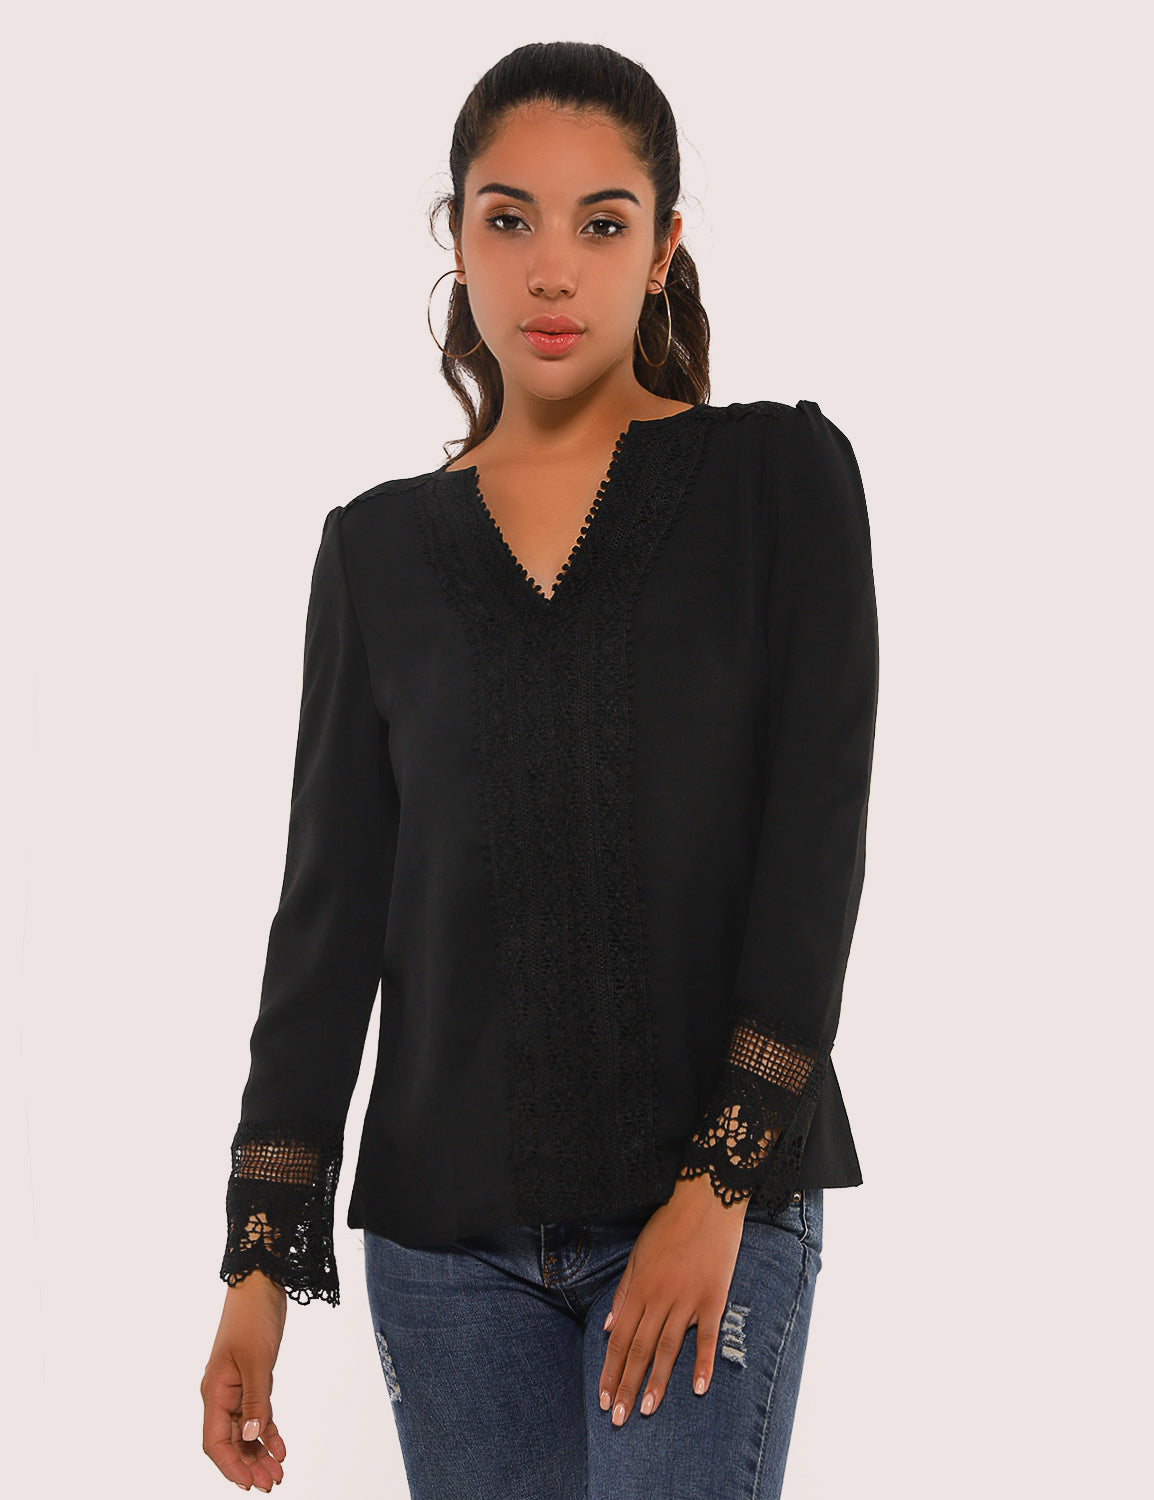 Lace Patchwork Tunic Top V Neck Blouse